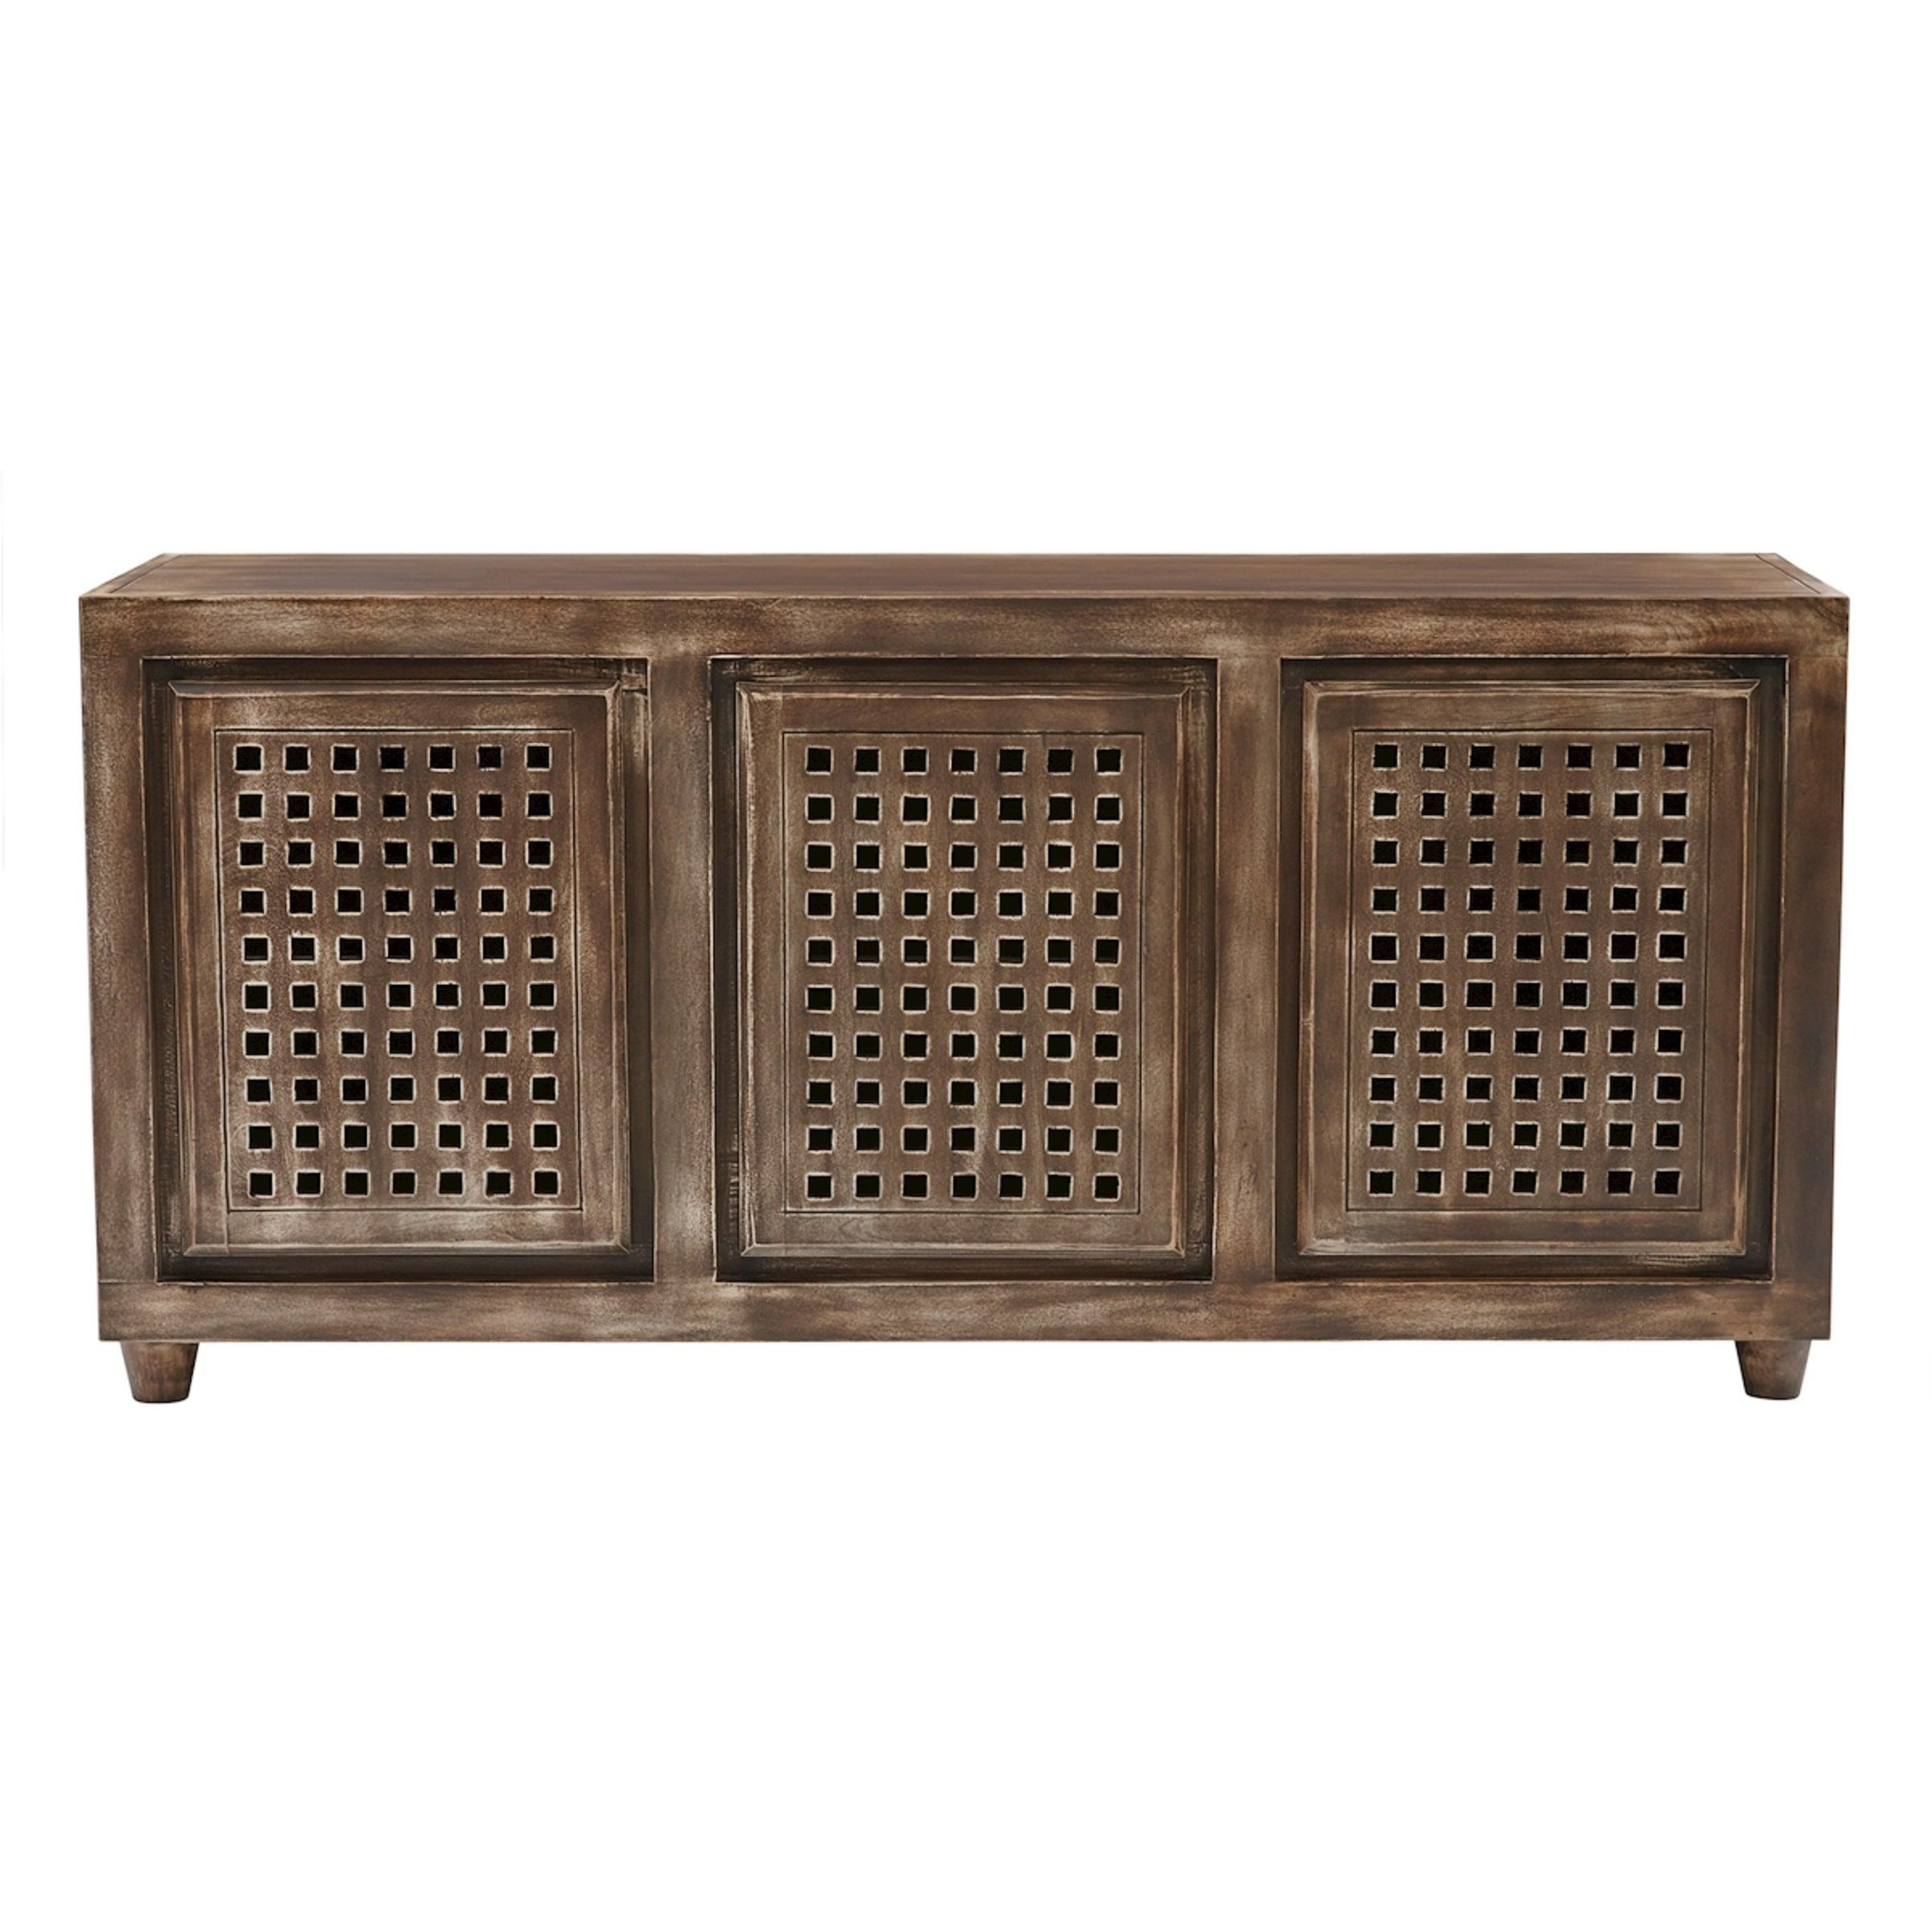 Elk Lighting Gladys Brow Wood Tone Accent Console (three Drawer Pertaining To Walters Media Console Tables (View 17 of 20)